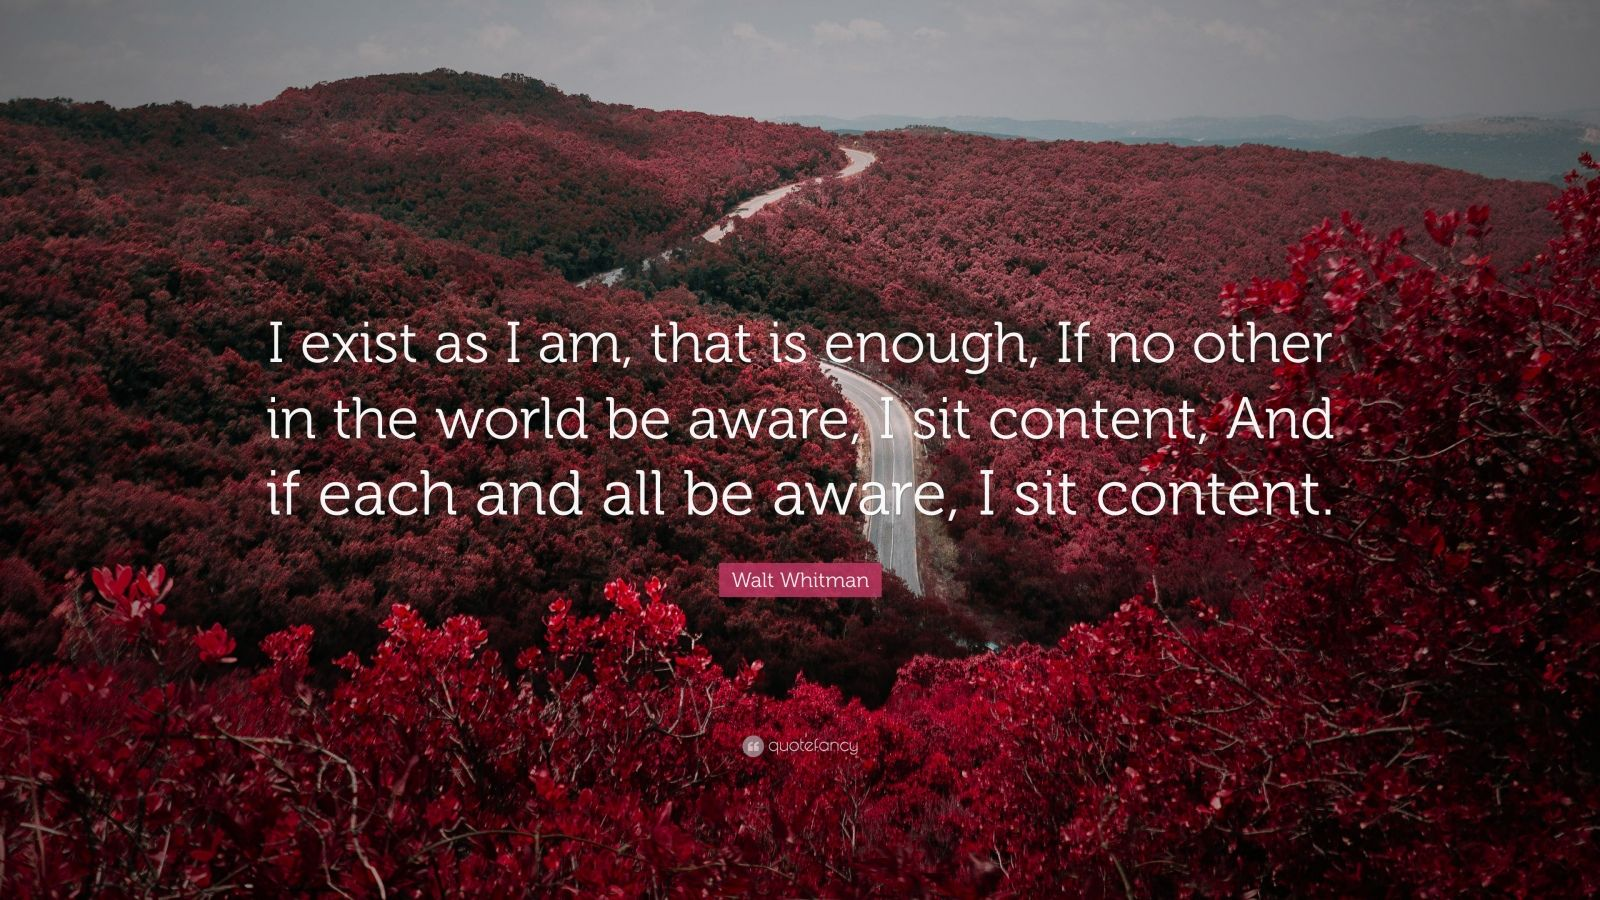 """Walt Whitman Quote: """"I exist as I am, that is enough, If no other in the world be aware, I sit content, And if each and all be aware, I sit content."""""""